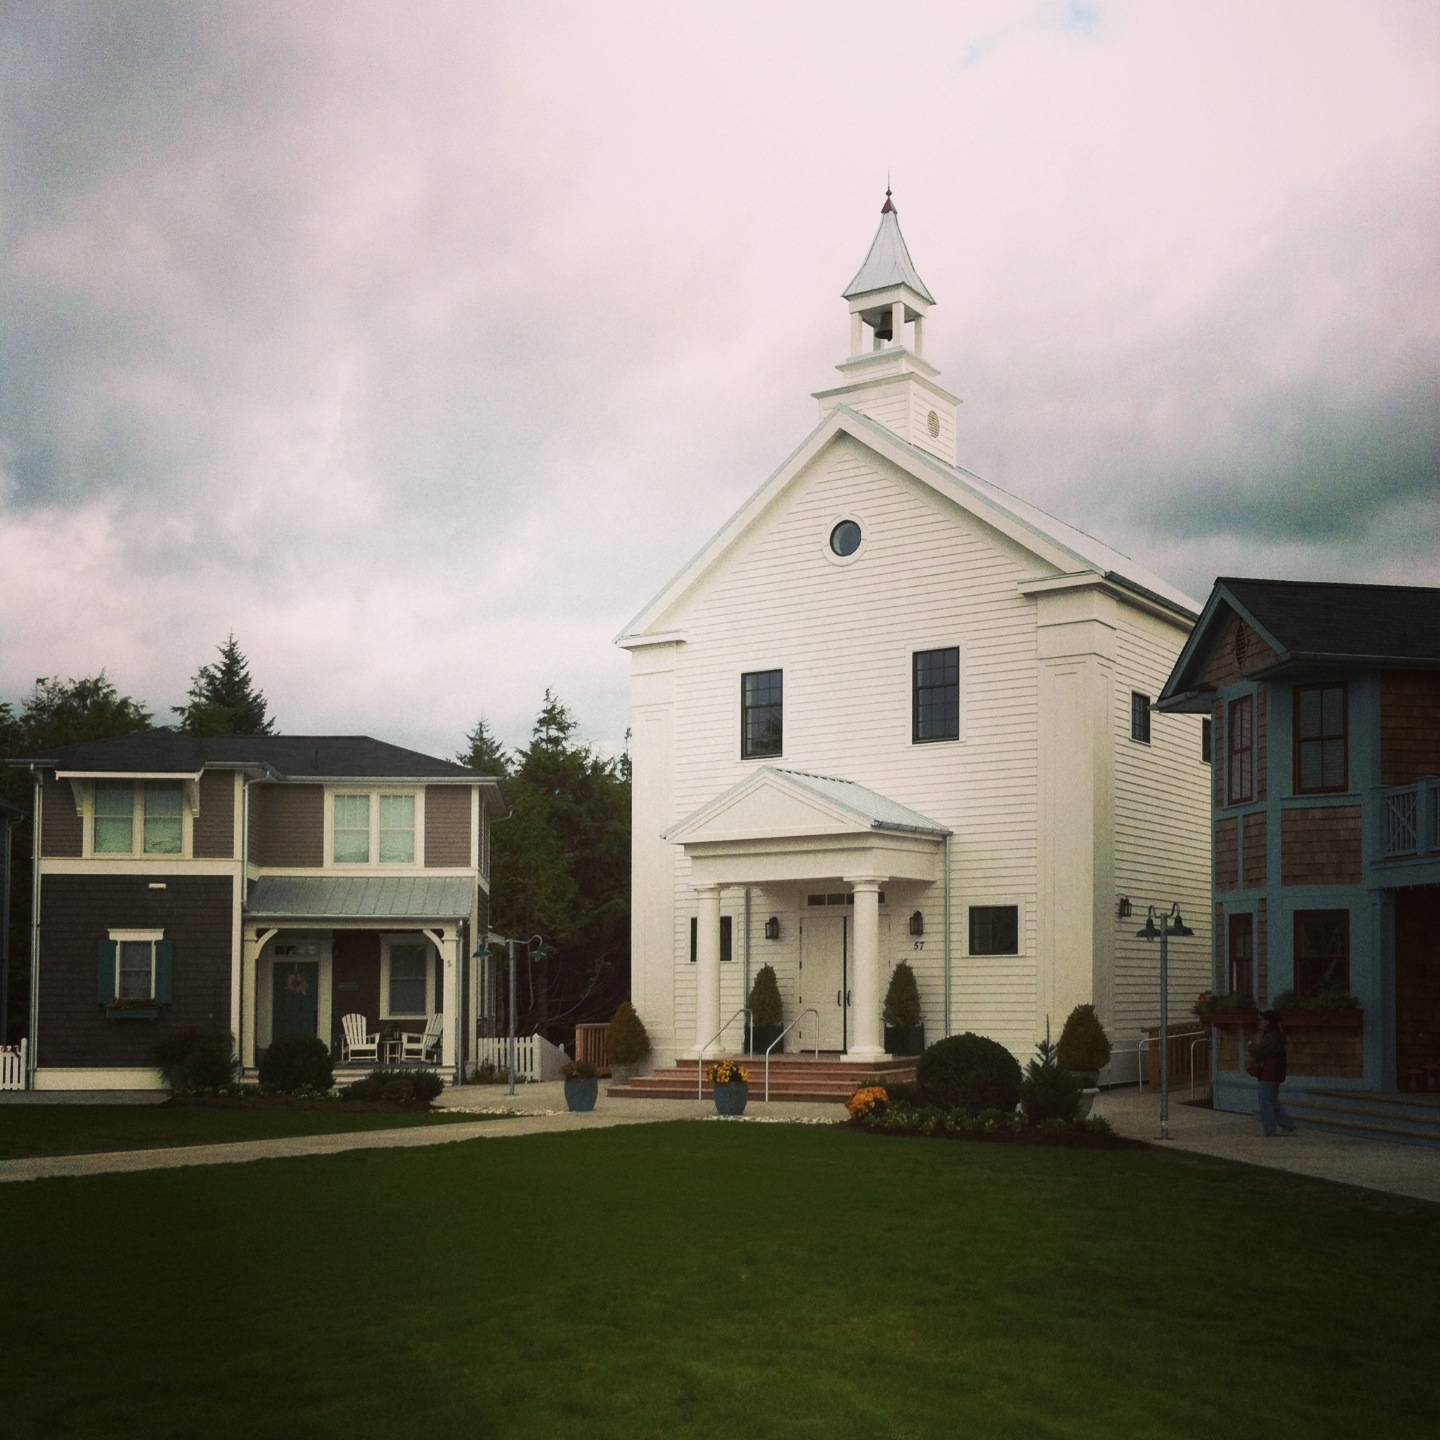 cute church in pacific northwest, photos from Idea Town, Artistic photos of churches